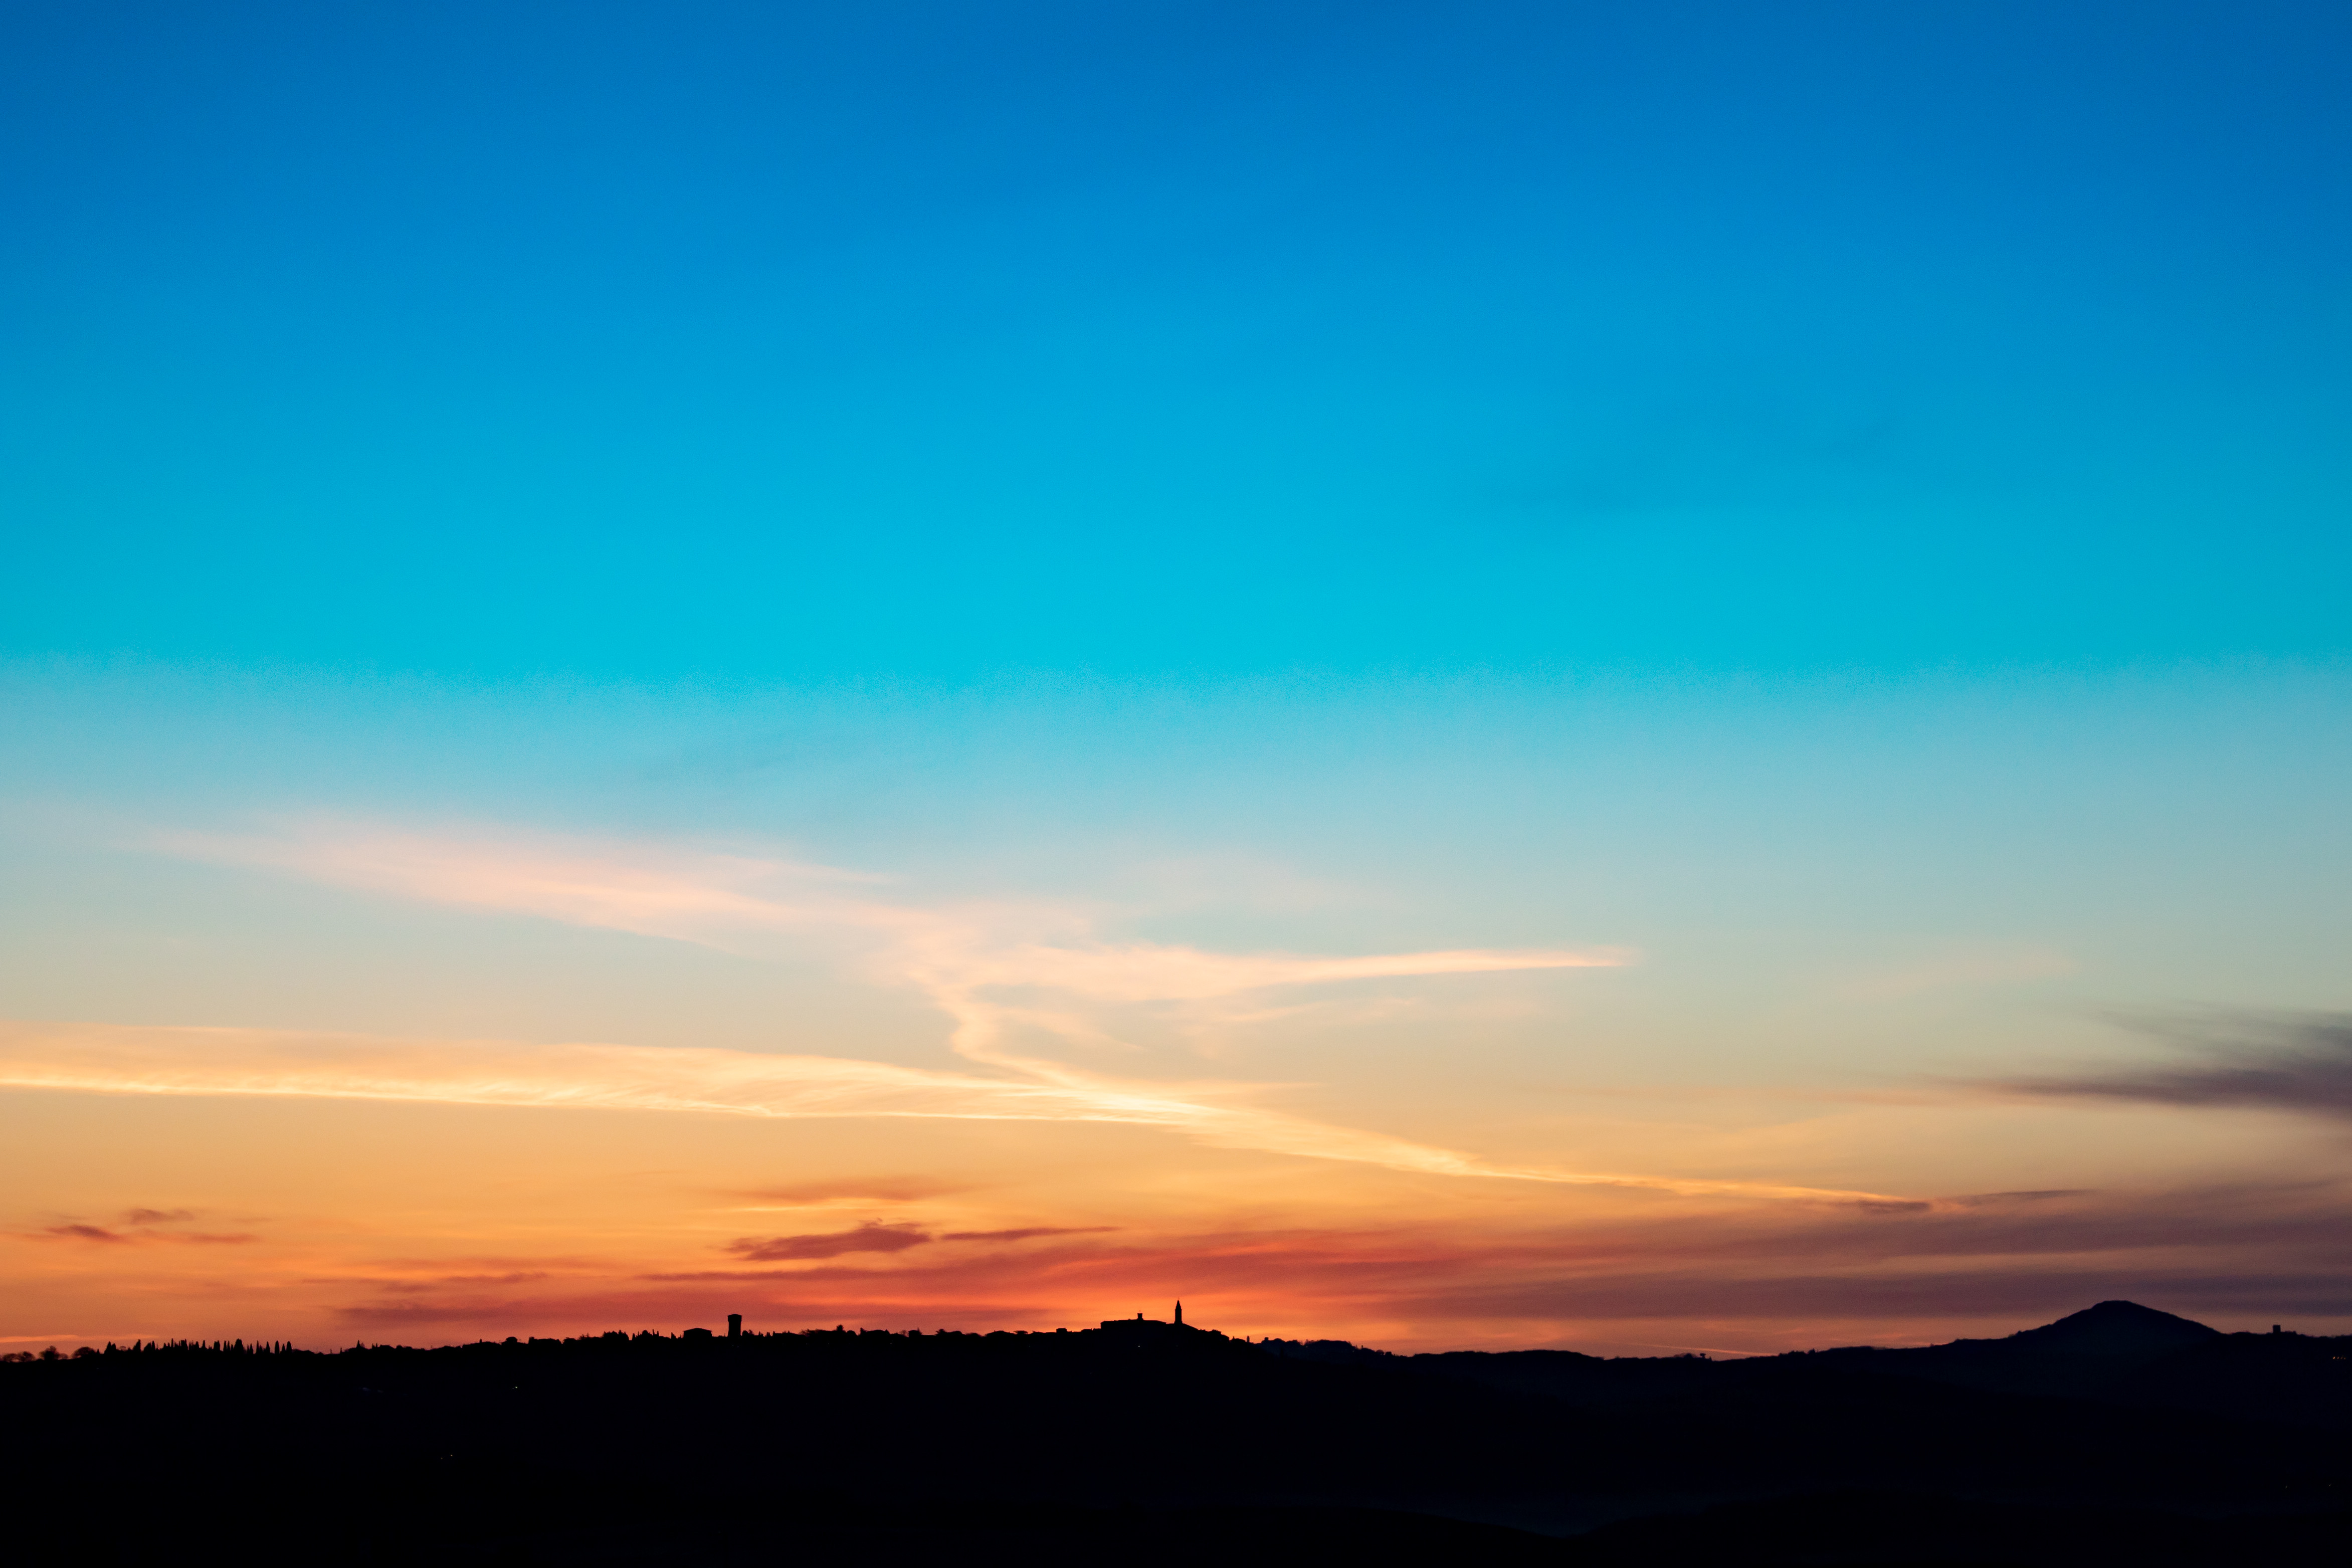 109083 download wallpaper Nature, Hill, Silhouette, Dusk, Twilight, Sunset, Sky screensavers and pictures for free